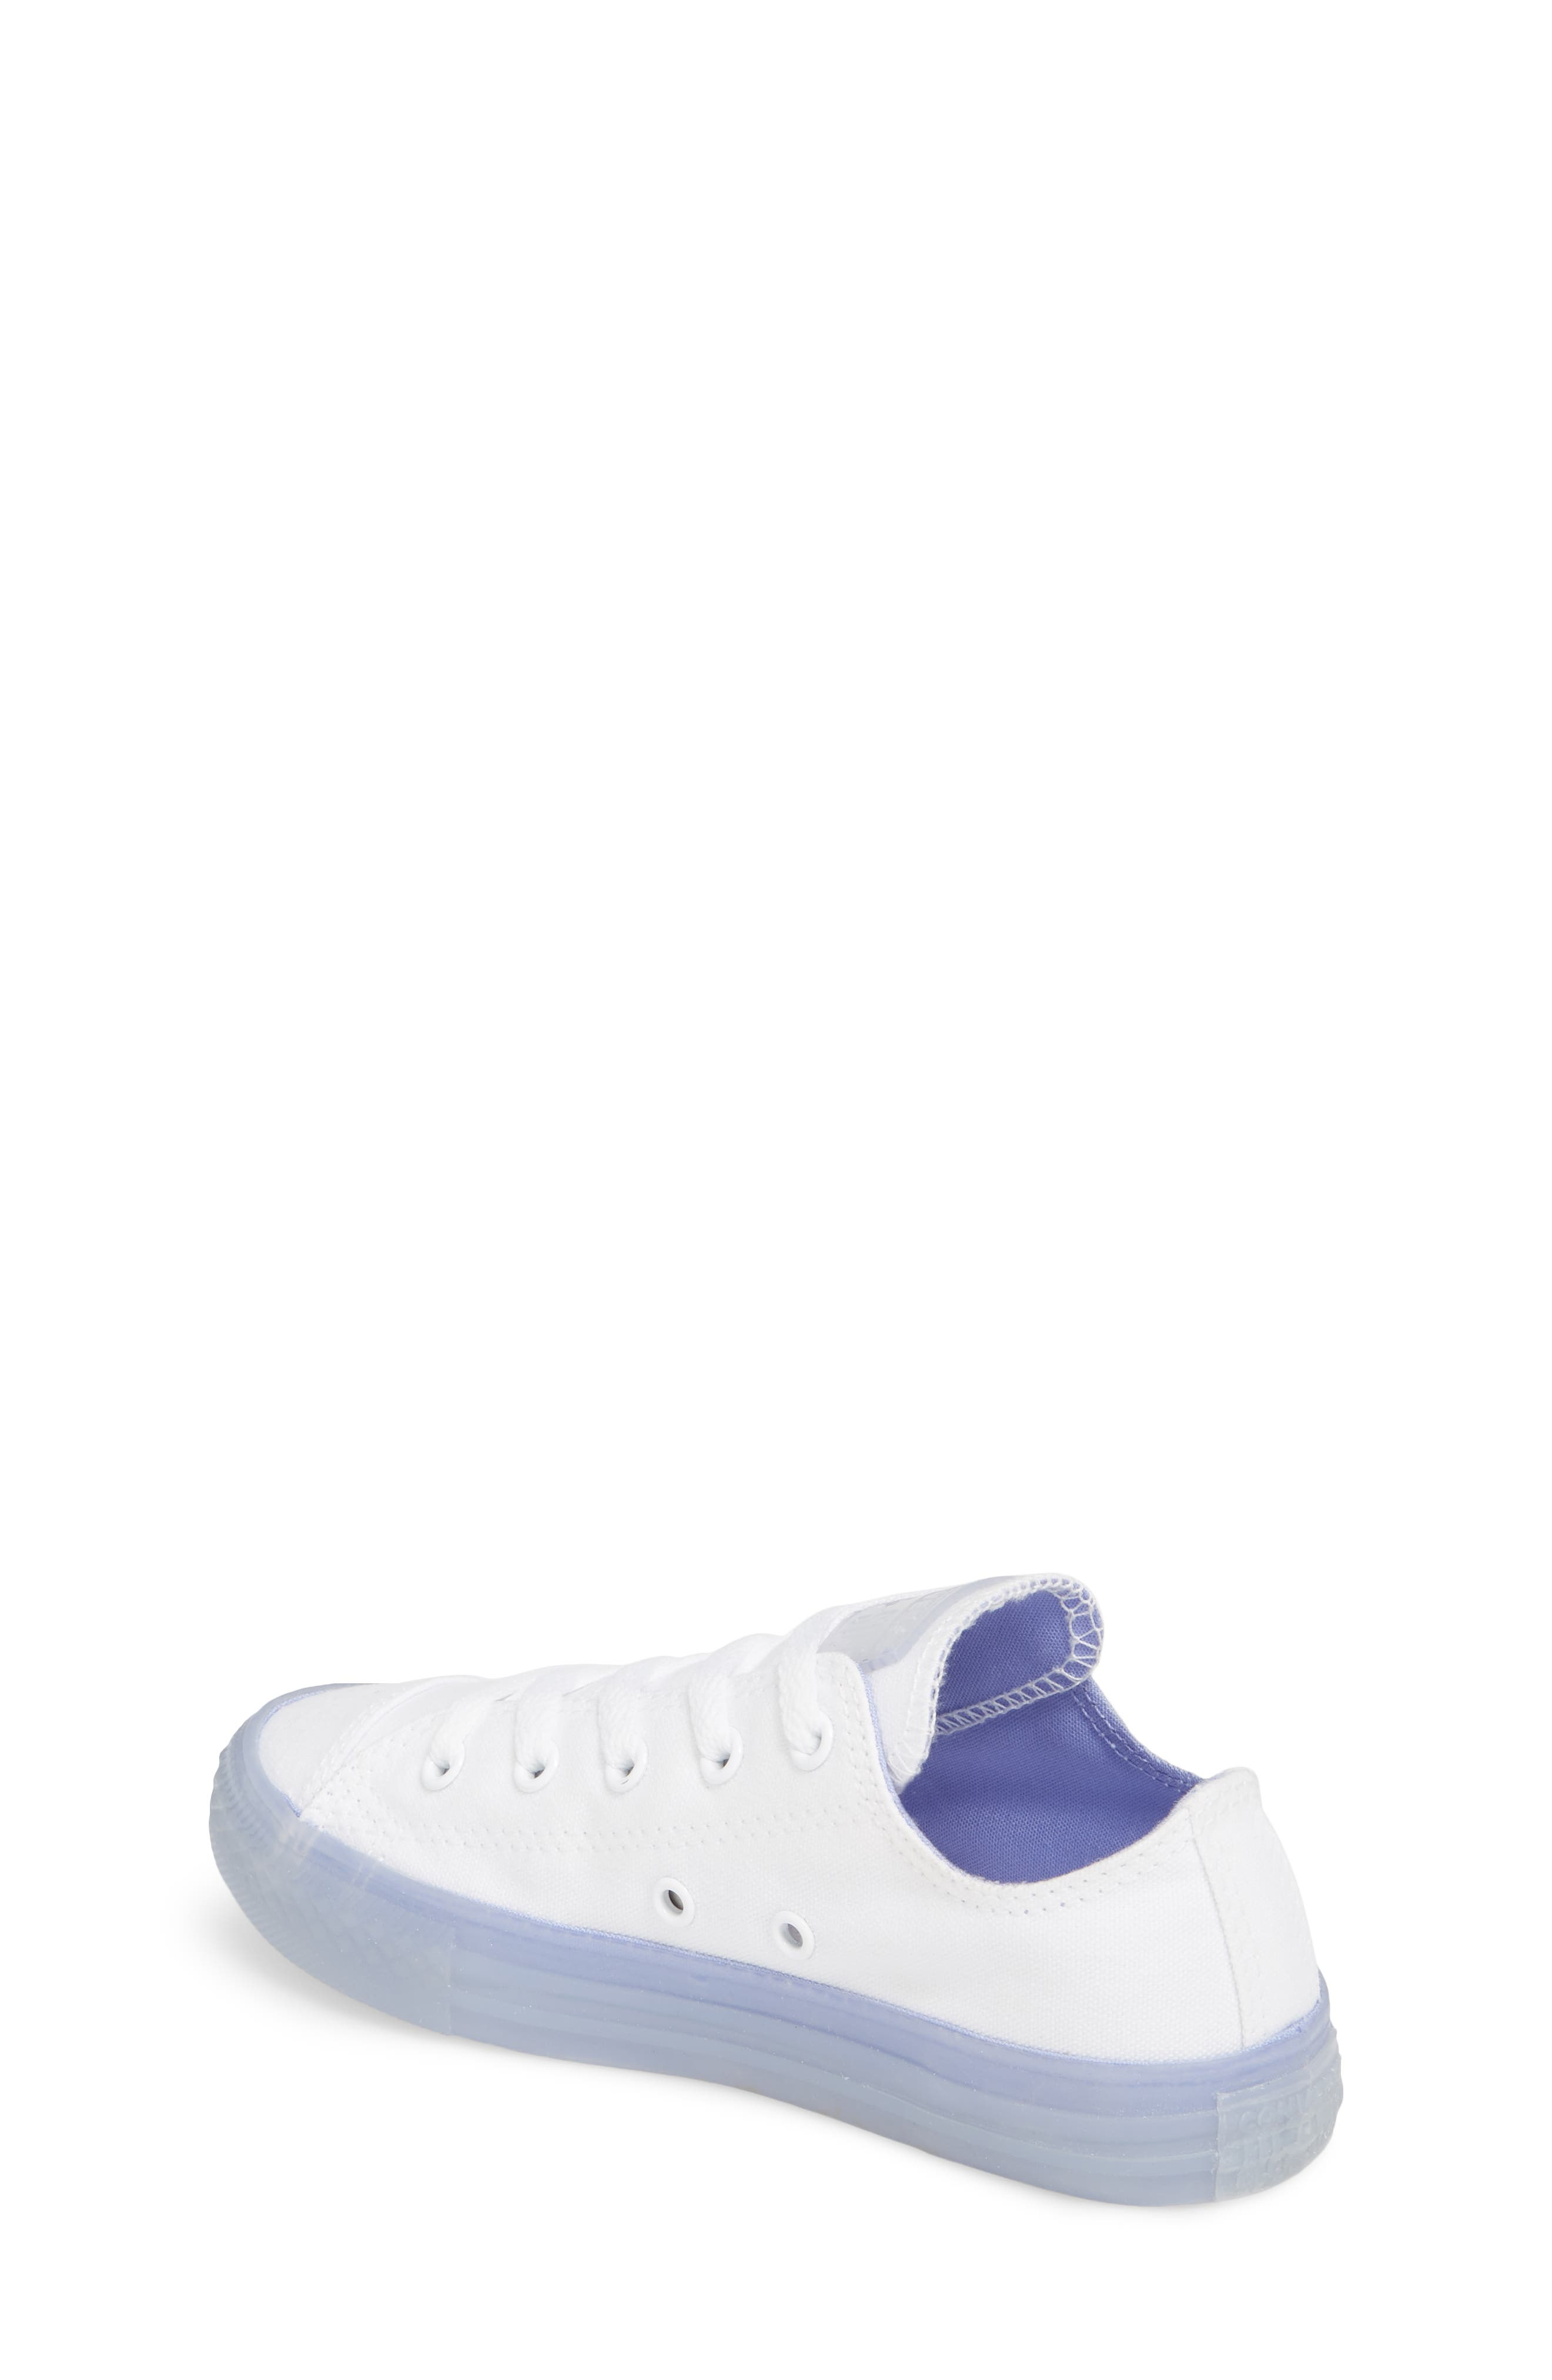 Chuck Taylor<sup>®</sup> All Star<sup>®</sup> Jelly Low Top Sneaker,                             Alternate thumbnail 2, color,                             503